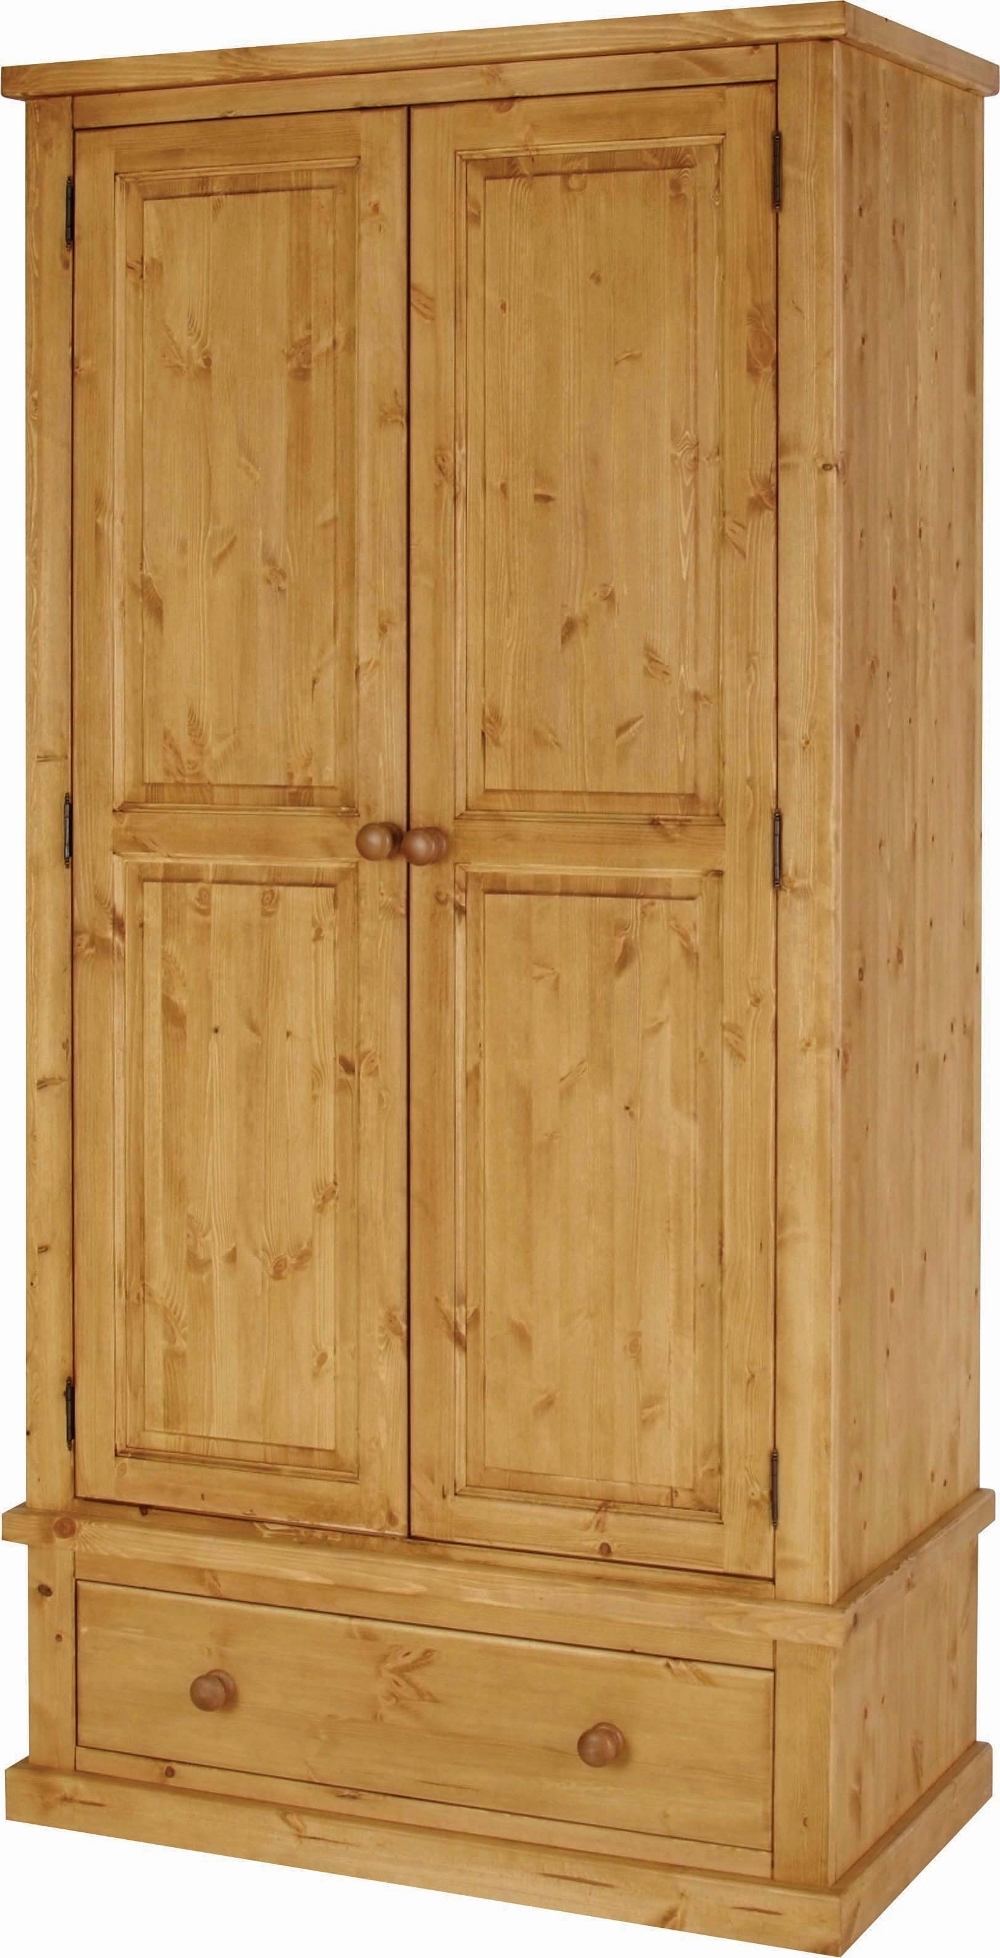 2018 Double Pine Wardrobes For Large Pine Wardrobe With Drawers • Drawer Furniture (View 1 of 15)